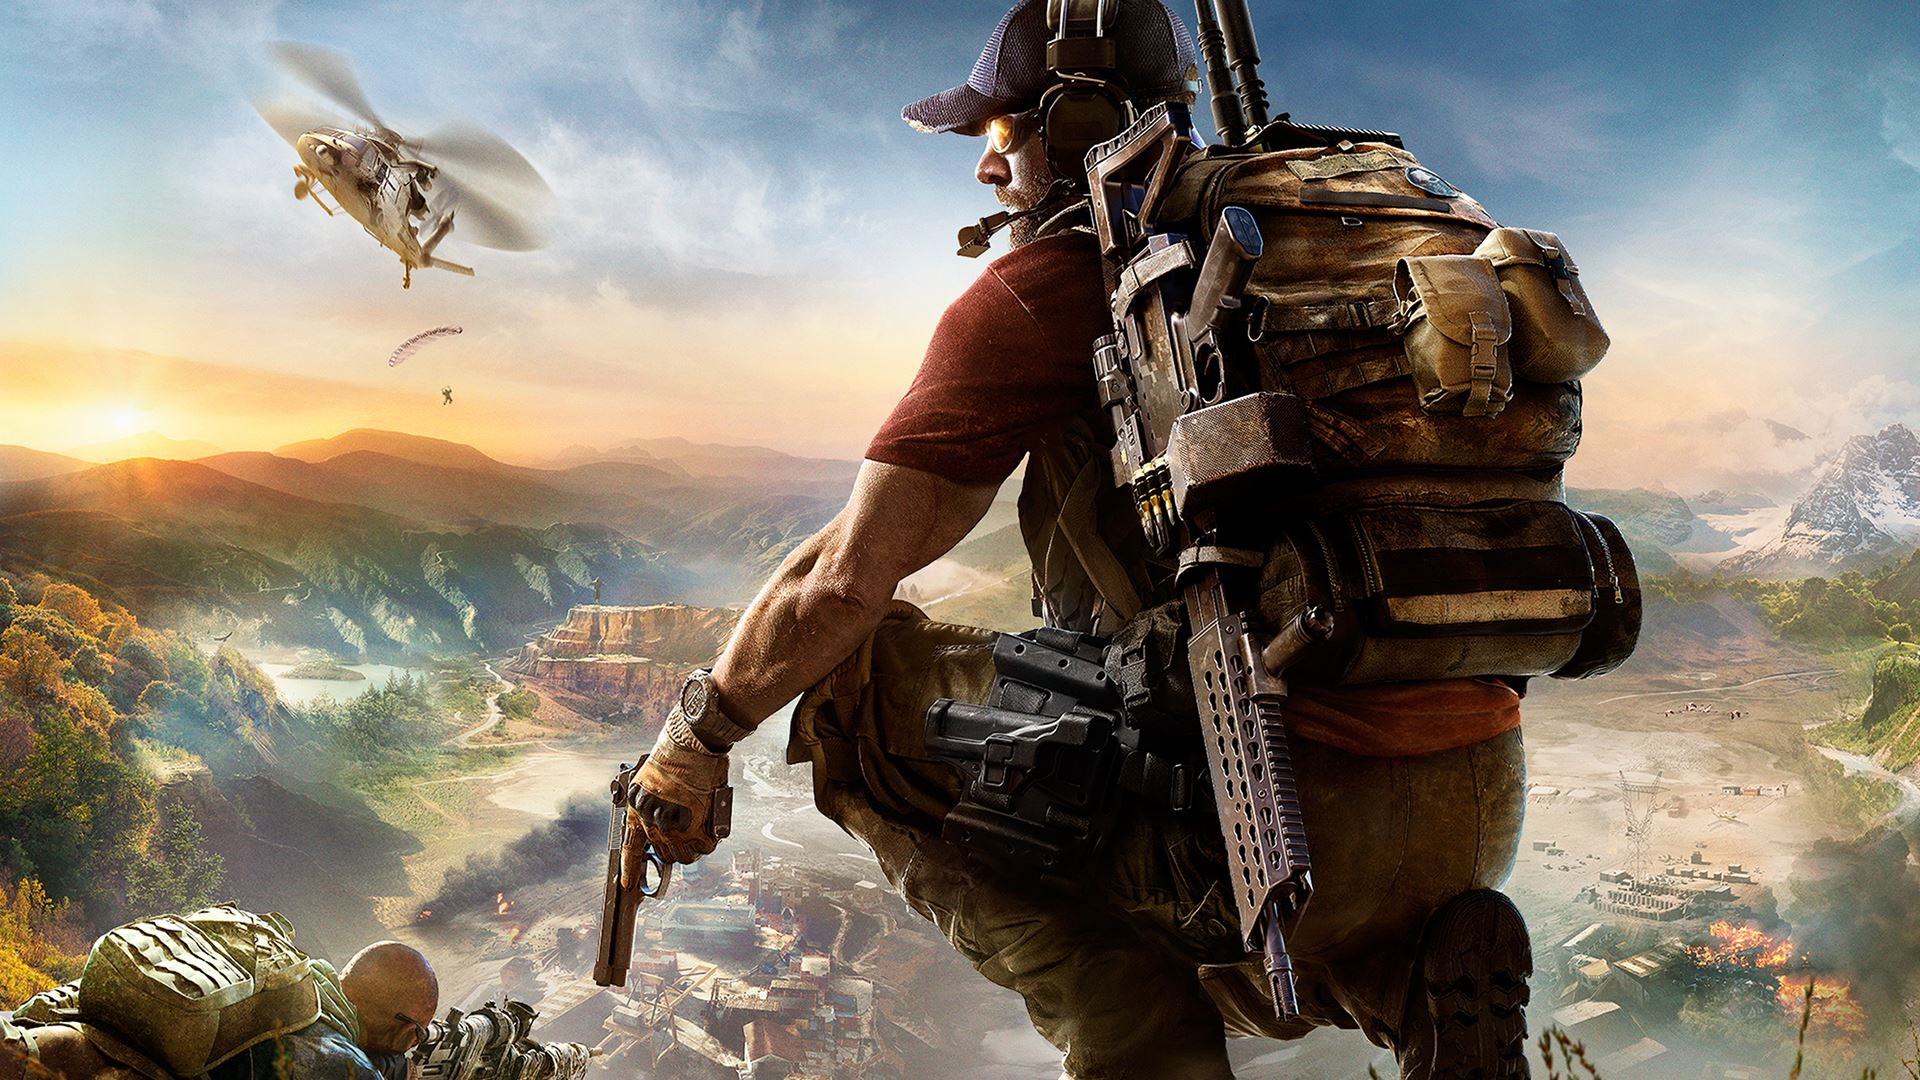 Enjoy 5 FREE hours with your friends, Recon-ing the Wildlands.